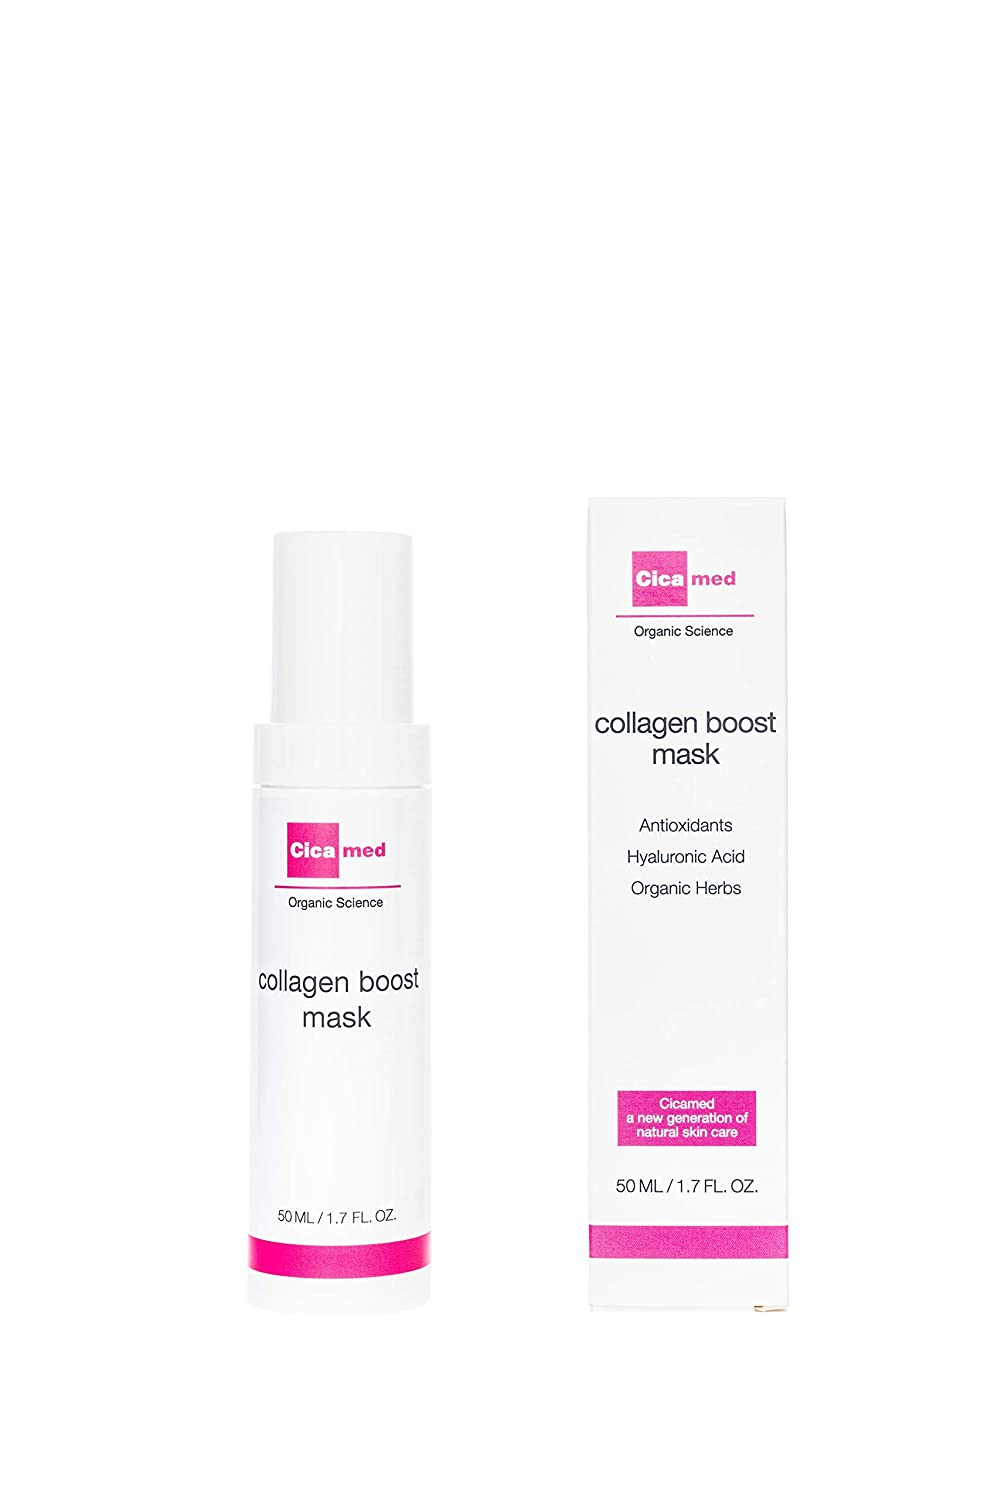 Anti-aging Collagen Boost Facial 新作 人気 Leave Organic トラスト Cicamed on Mask